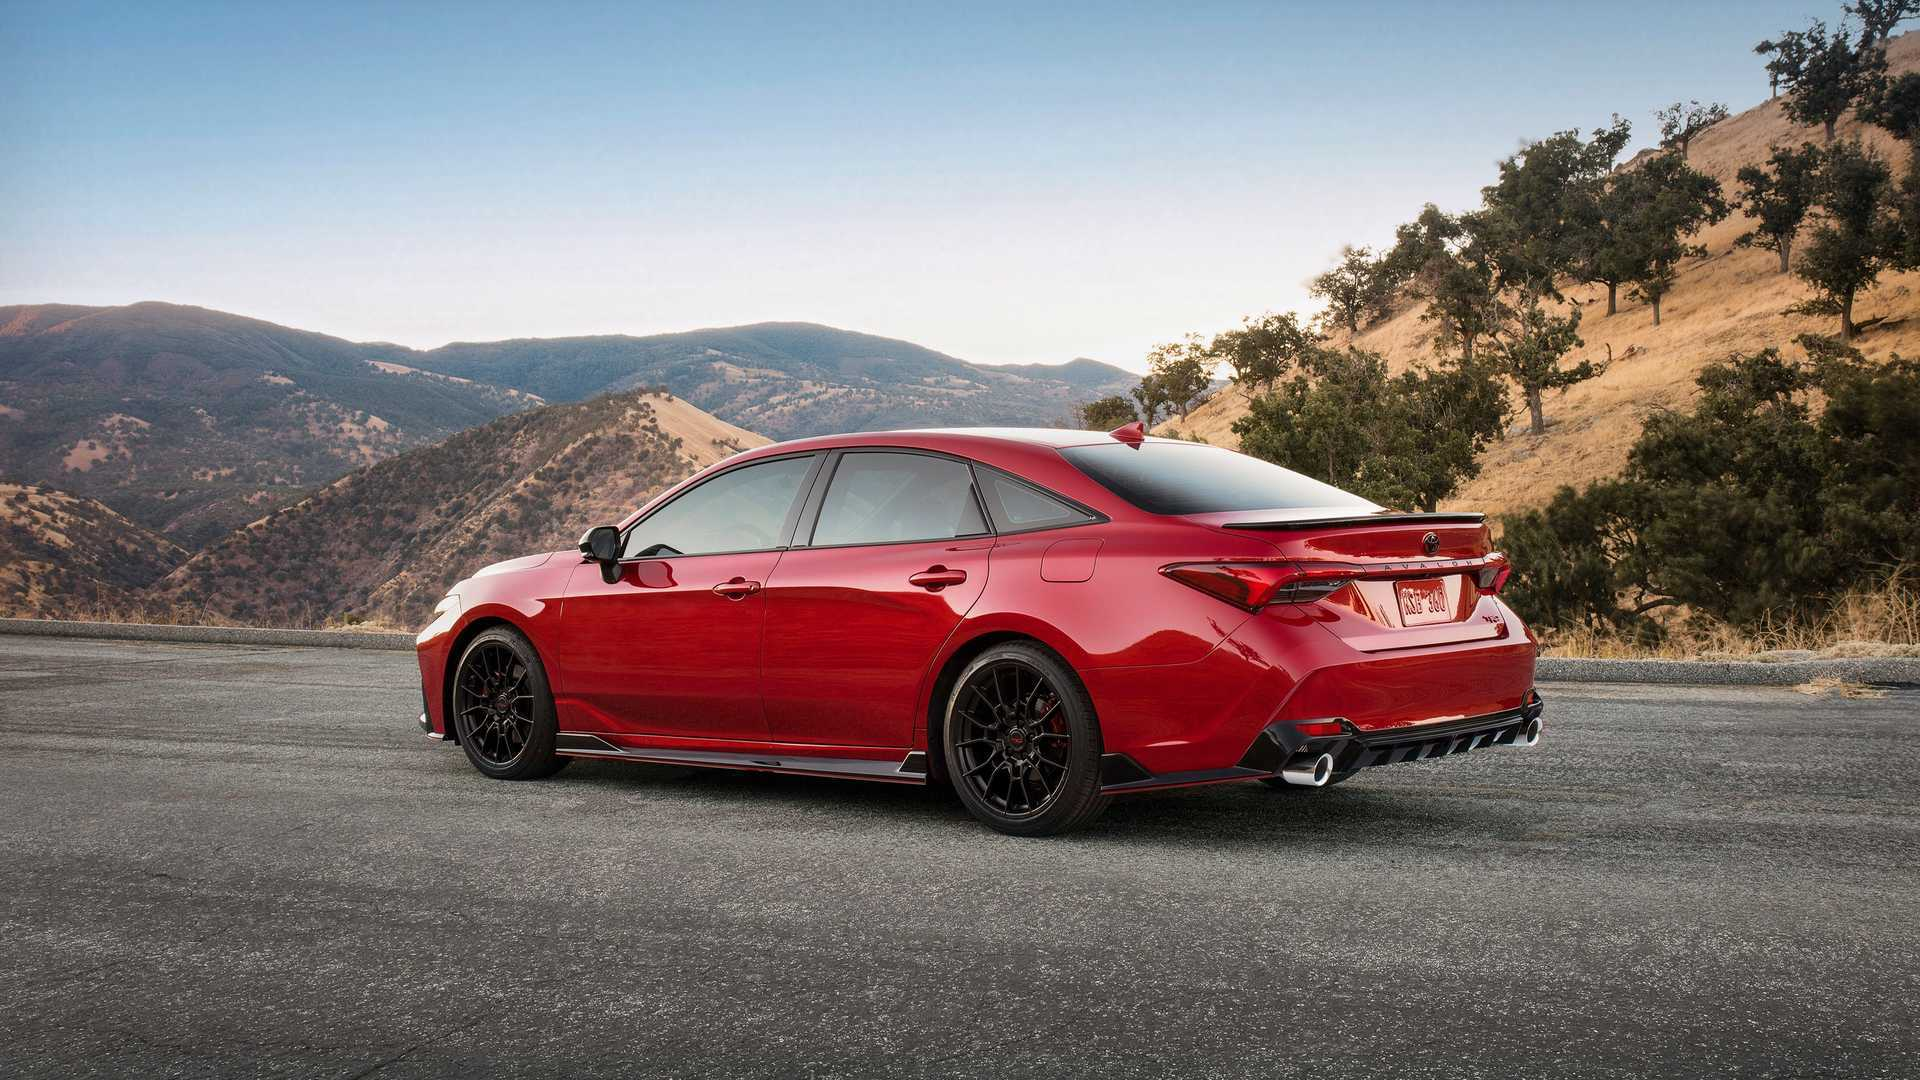 94 All New Toyota Avalon 2020 Pricing by Toyota Avalon 2020